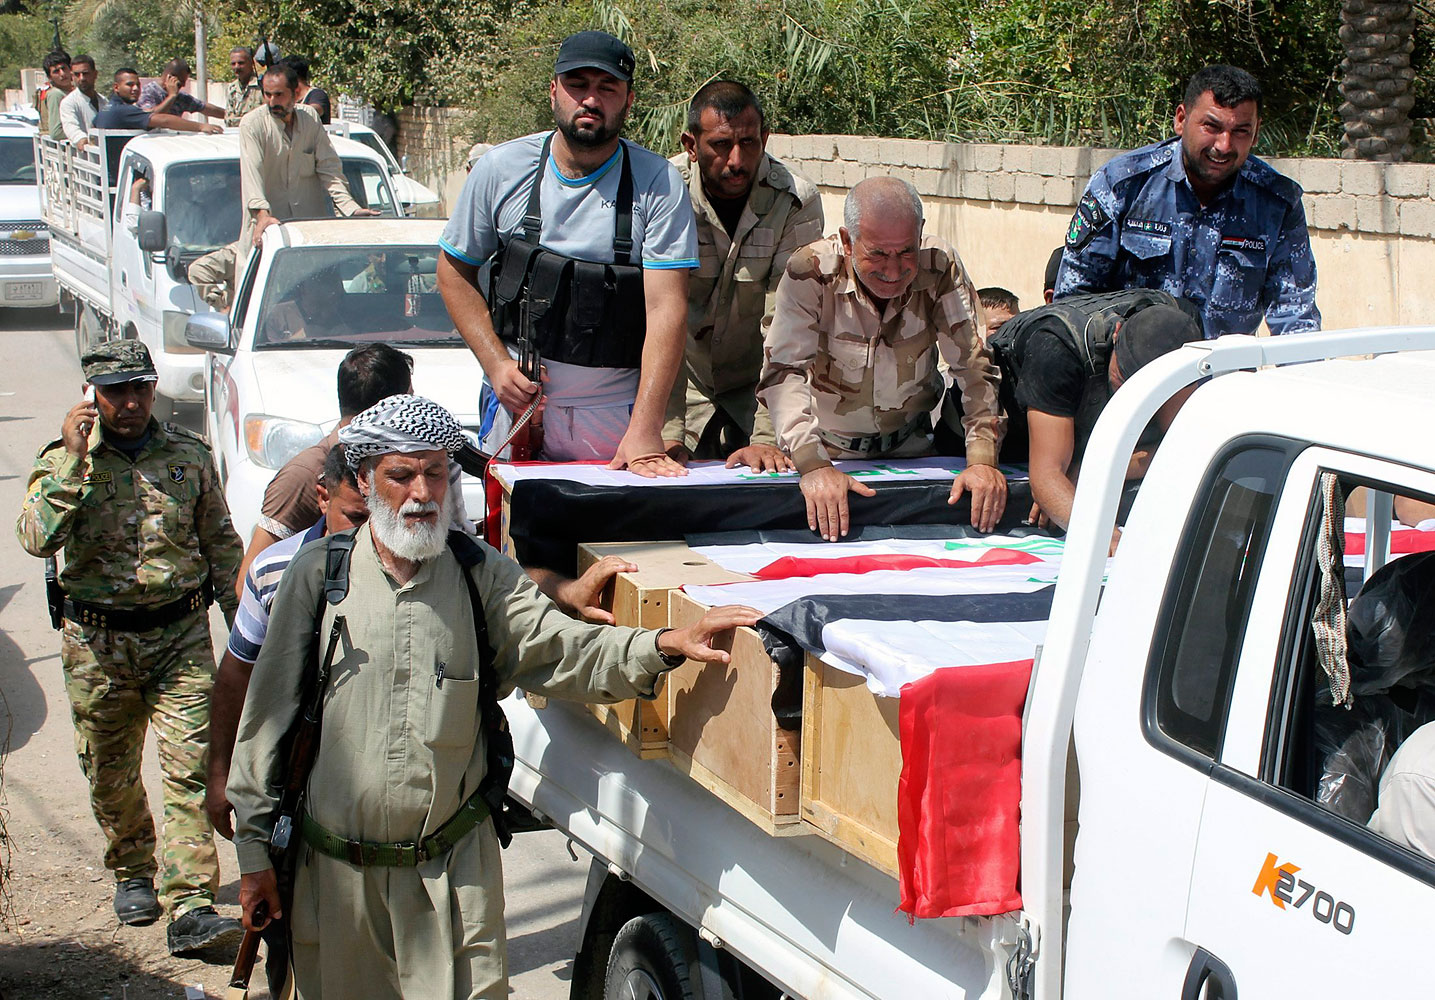 Mourners carry the coffins of Iraqi Shi'ite volunteers who were killed during clashes with militants of the Islamic State of Iraq and Greater Syria in Amerli, during a funeral in Khalis, Iraq, on Aug. 31, 2014